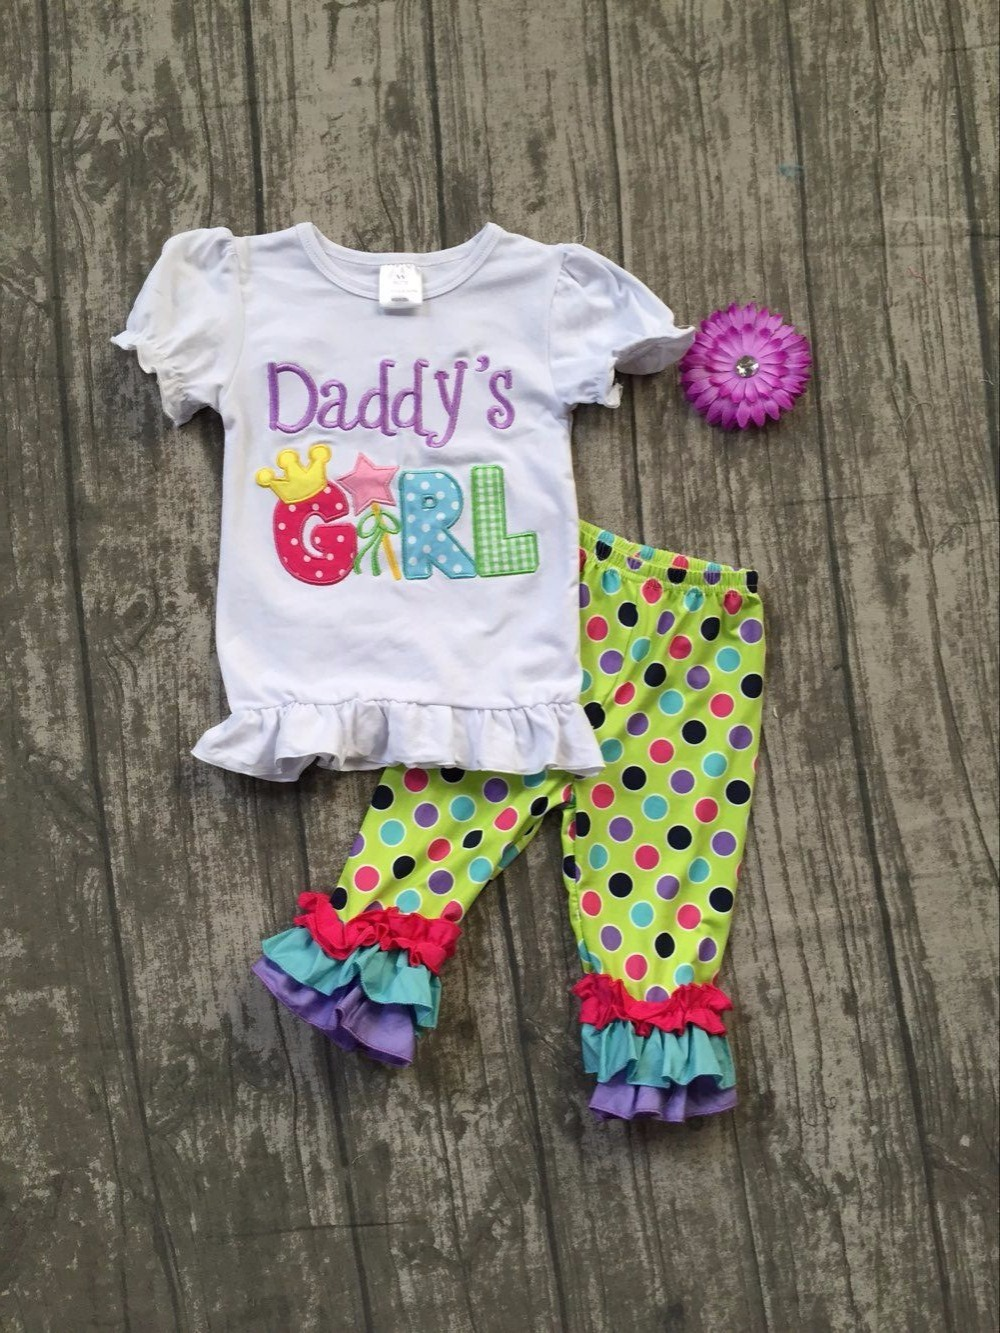 2018 back to school Super cute Daddy's girl short sleeves baby girls Summer boutique clothing capri set with matching bow блокнот в клетку с вашим текстом back to school